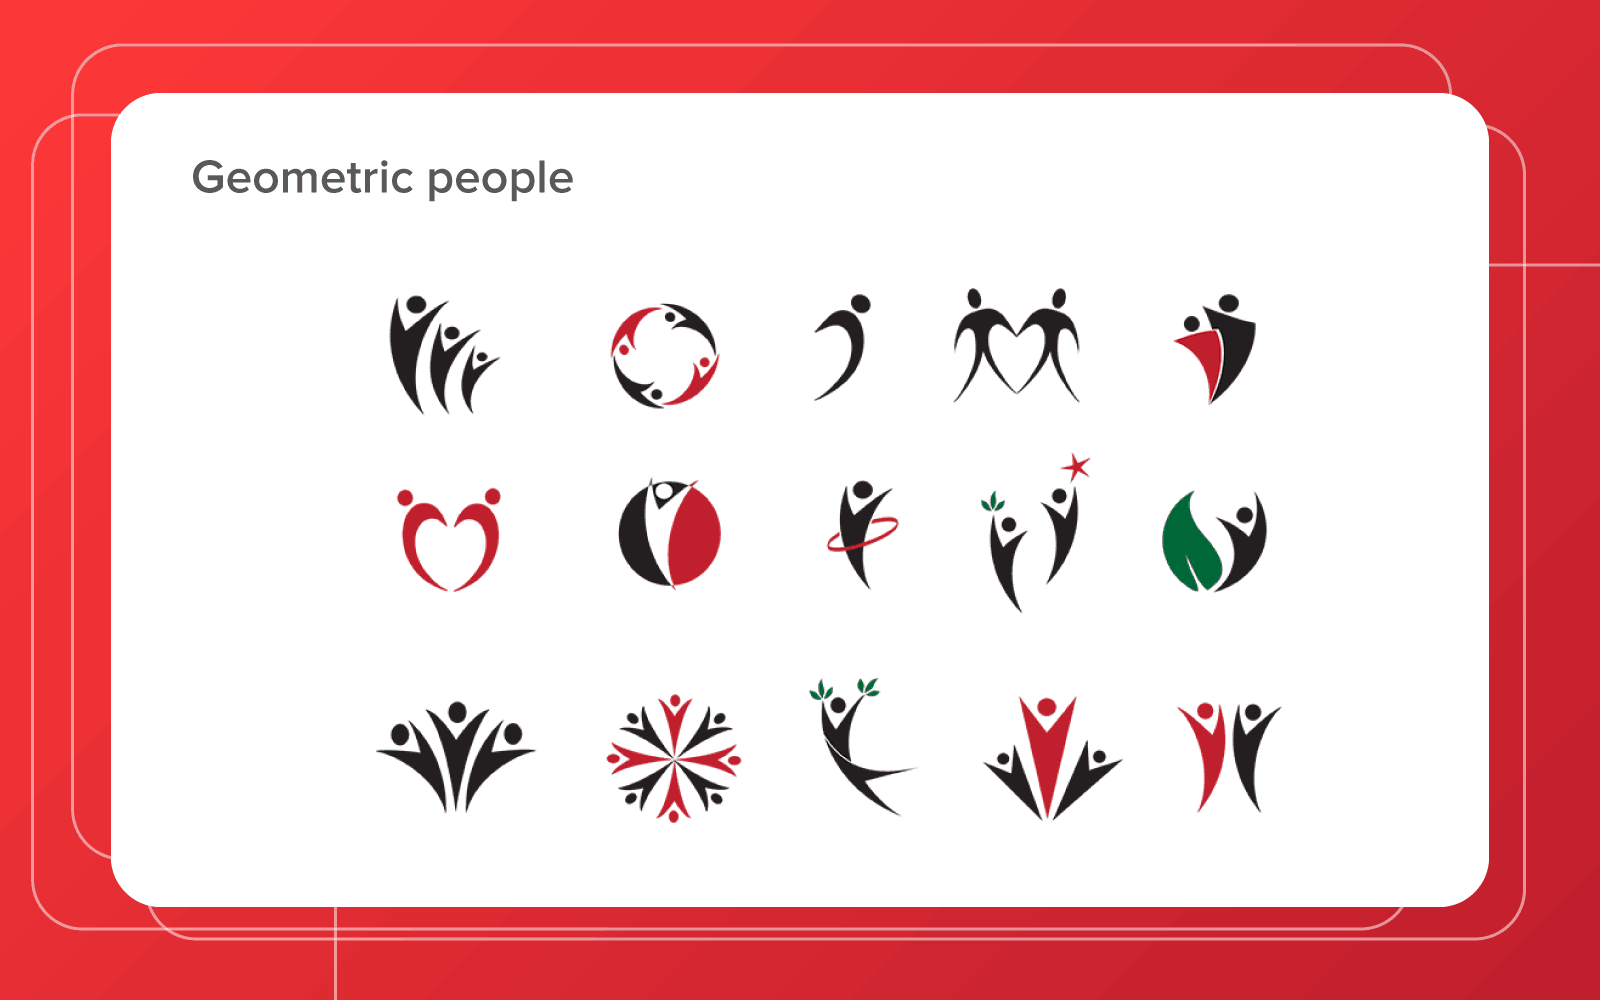 geometric people logo designs